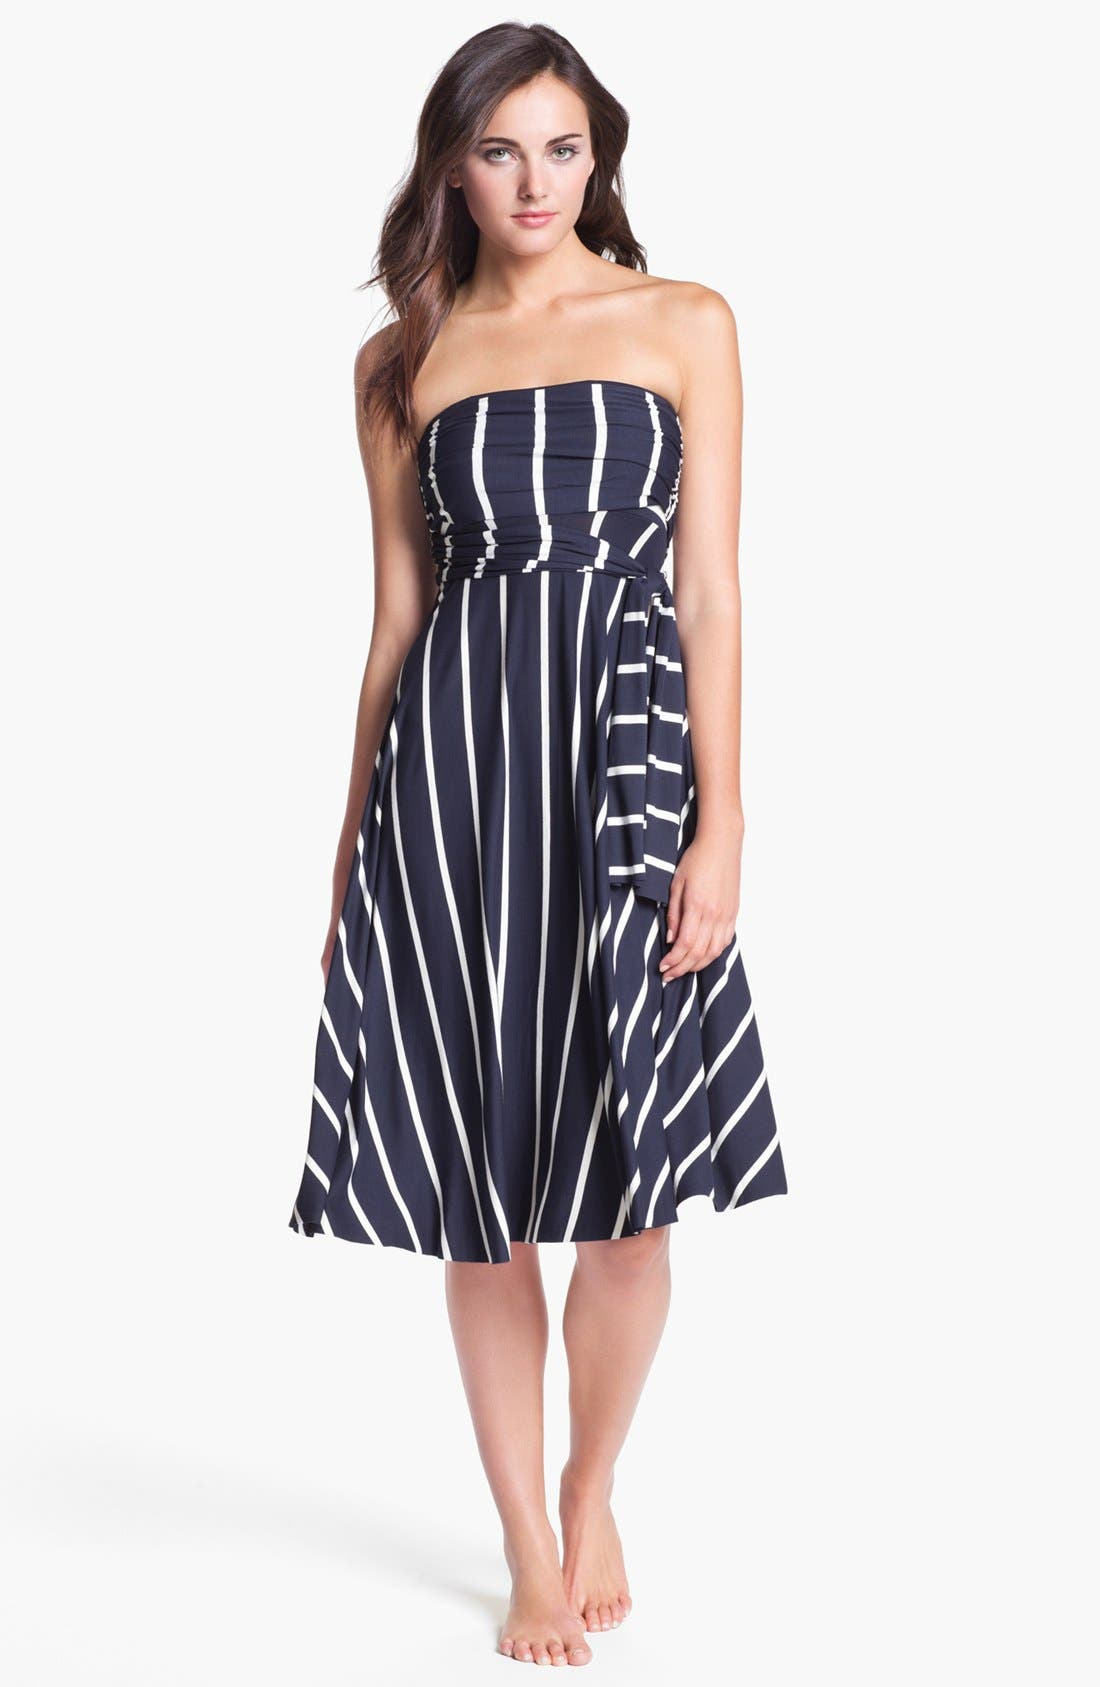 Stripe Convertible Cover-Up Dress,                         Main,                         color, Navy/ White Stripe